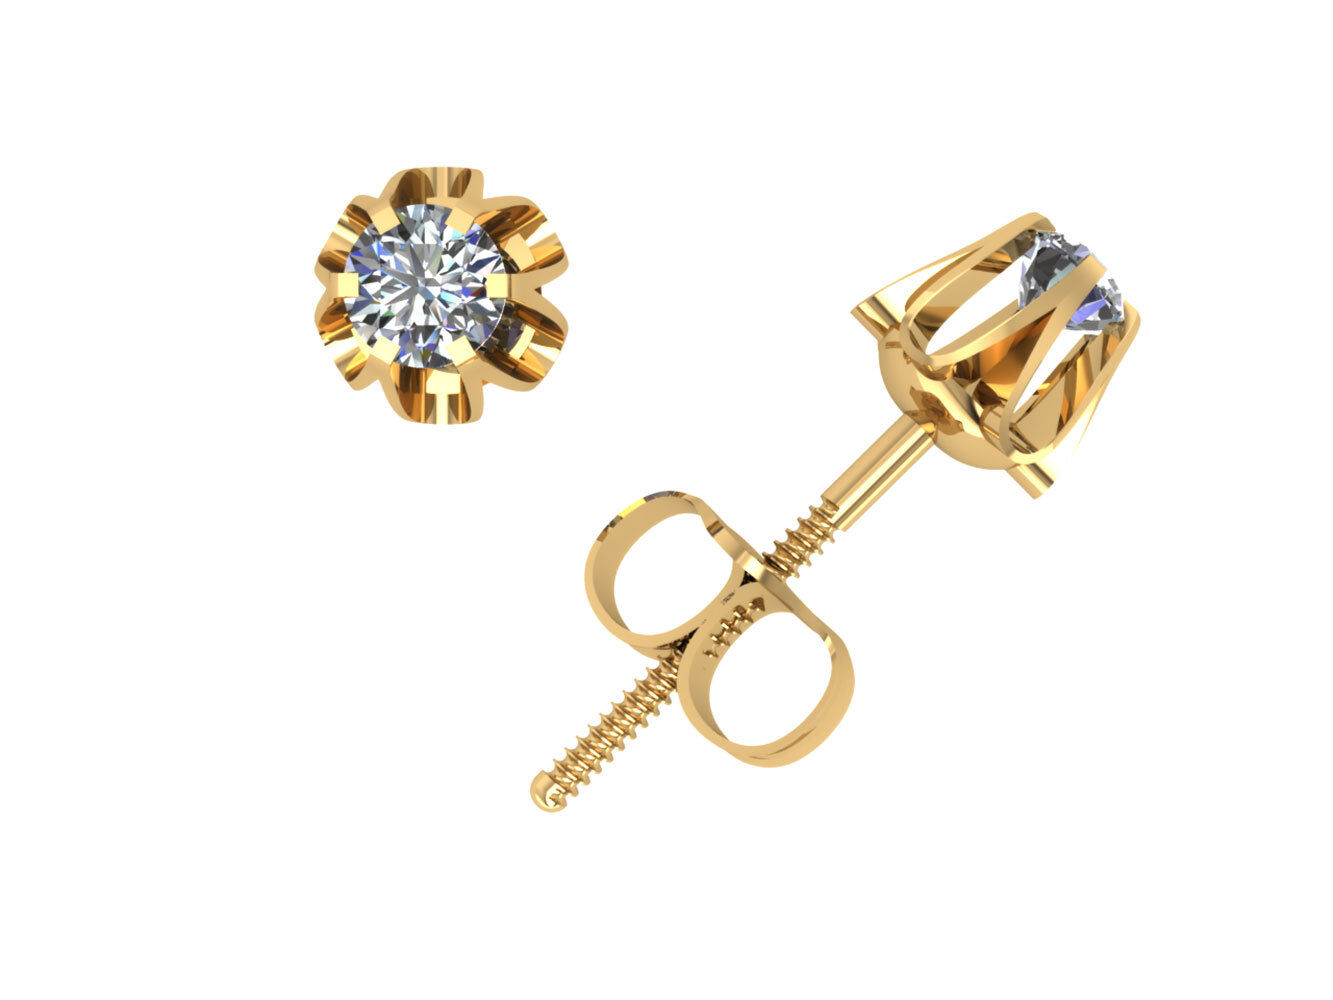 0.1Ct Round Diamond Buttercup Stud Earrings 14k Yellow gold 6Prong Setting J I1